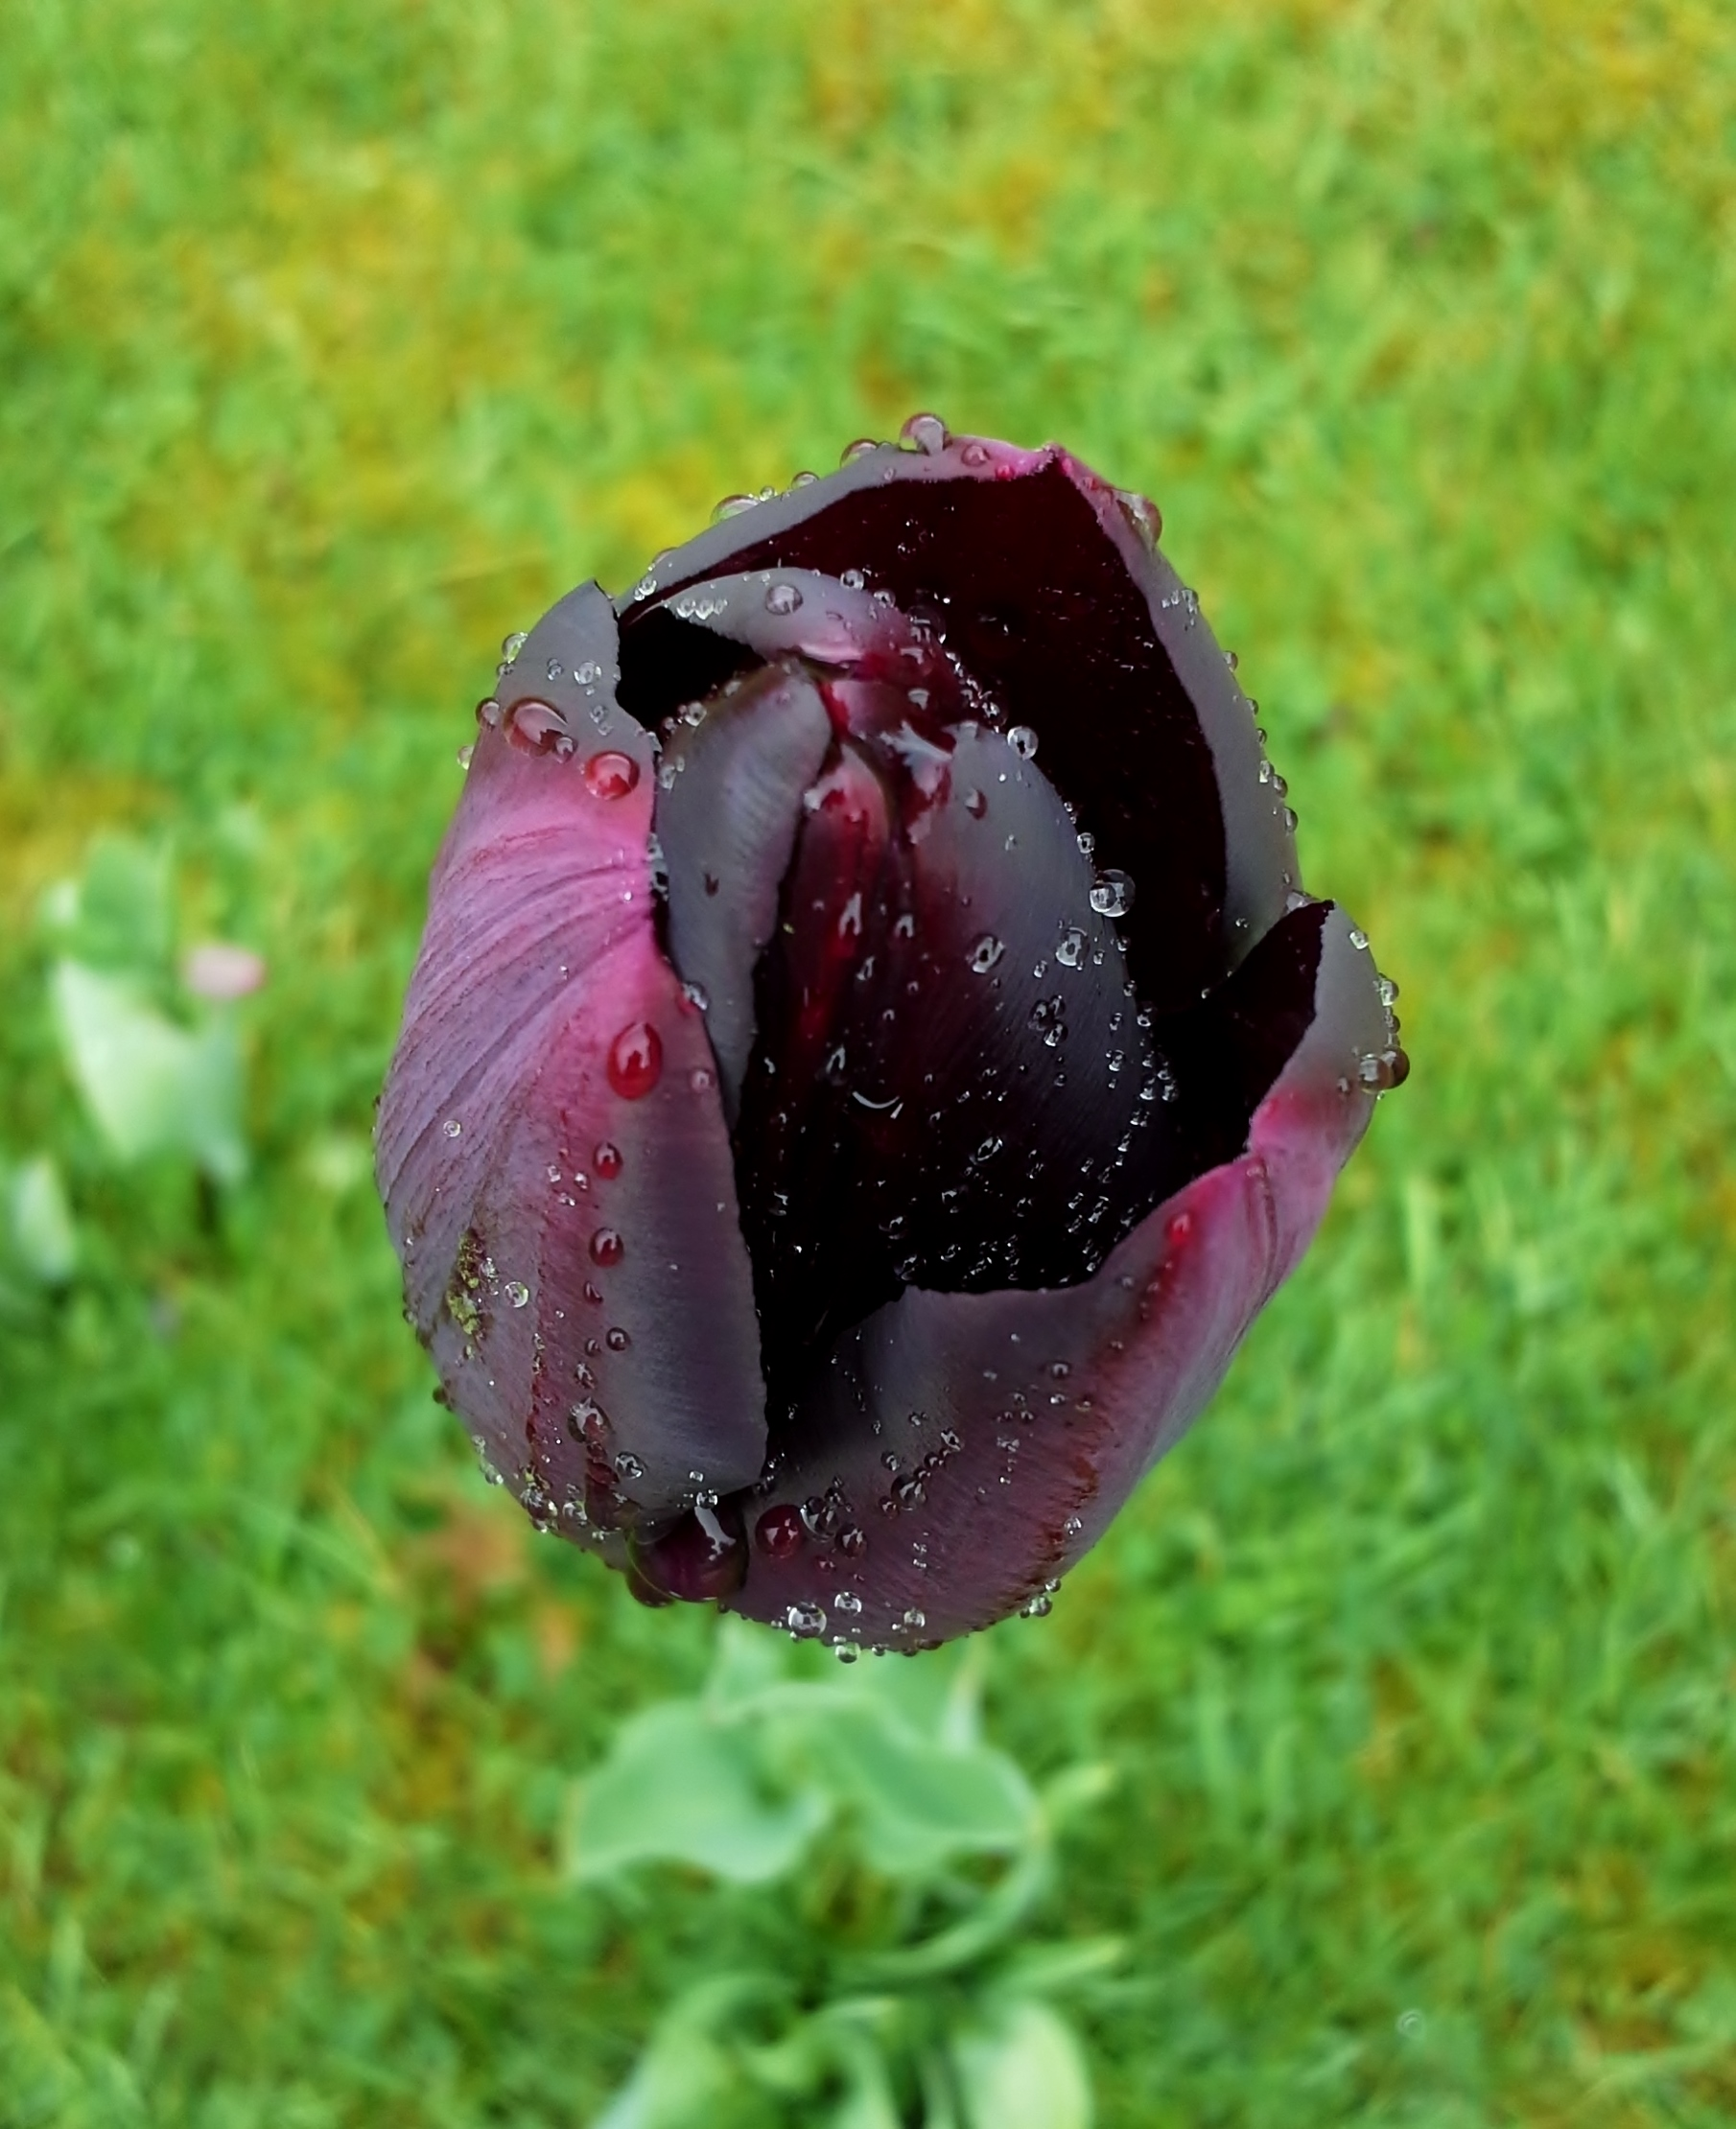 Raindrops on Purple Tulip on the Lawn